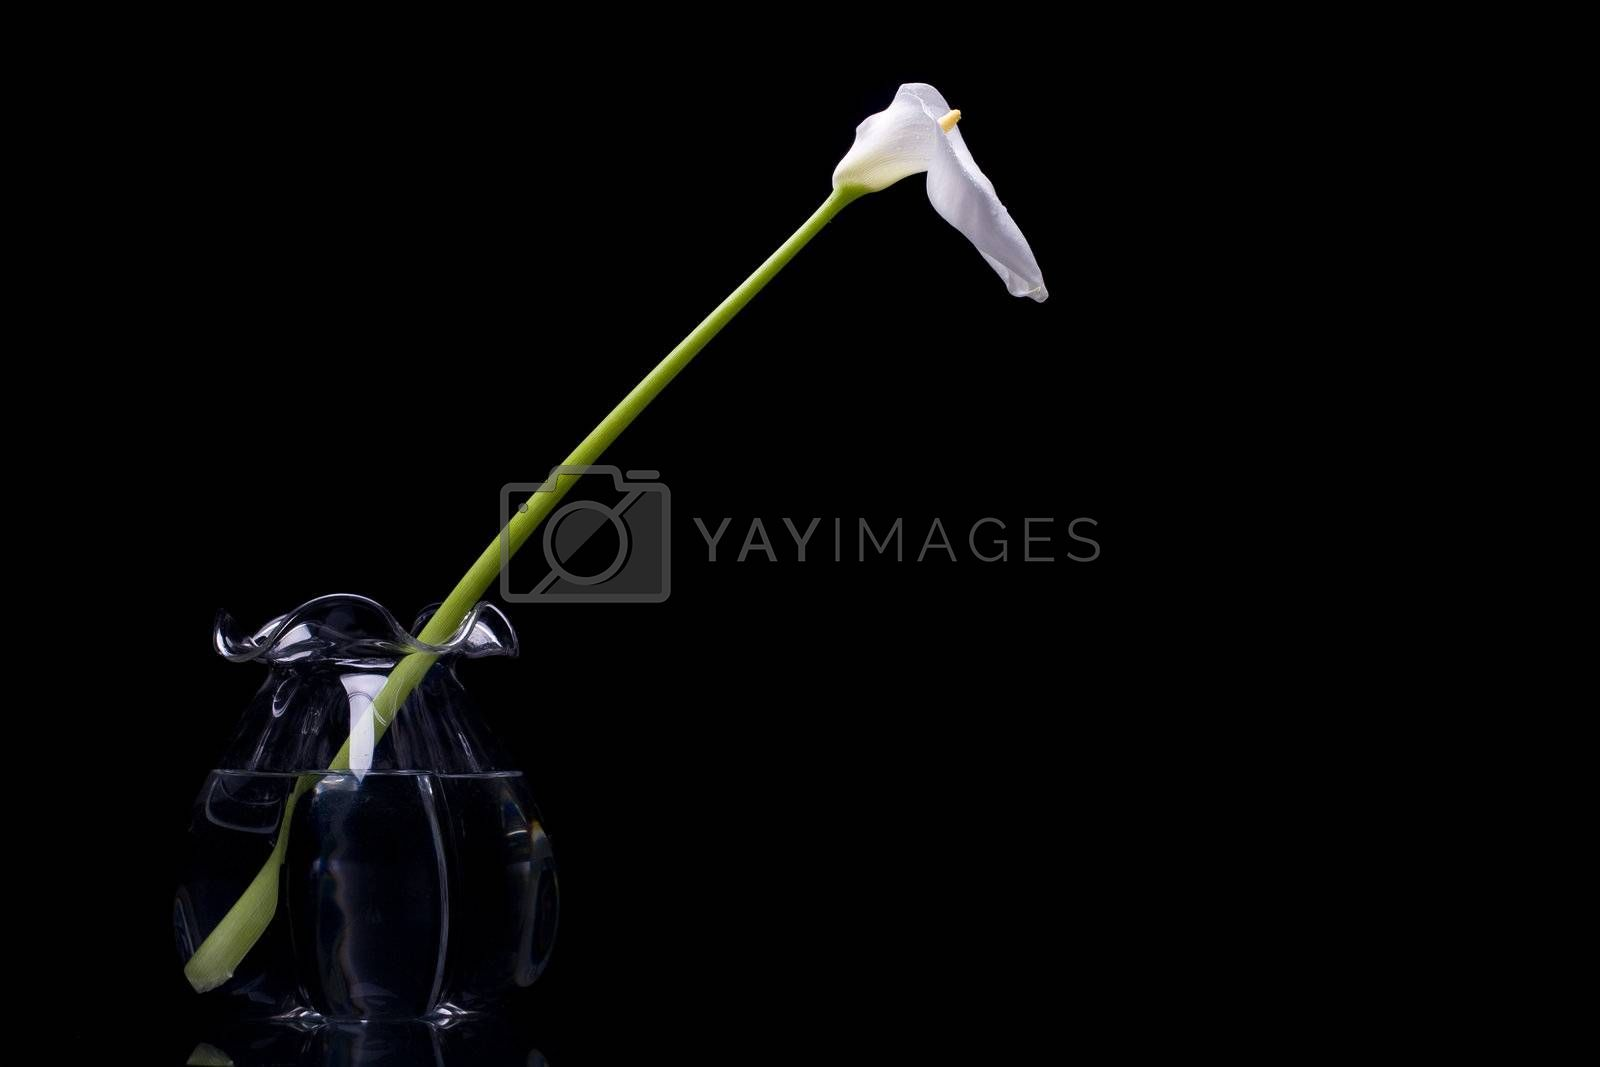 A white calla on a glass jar with water isolated on black background